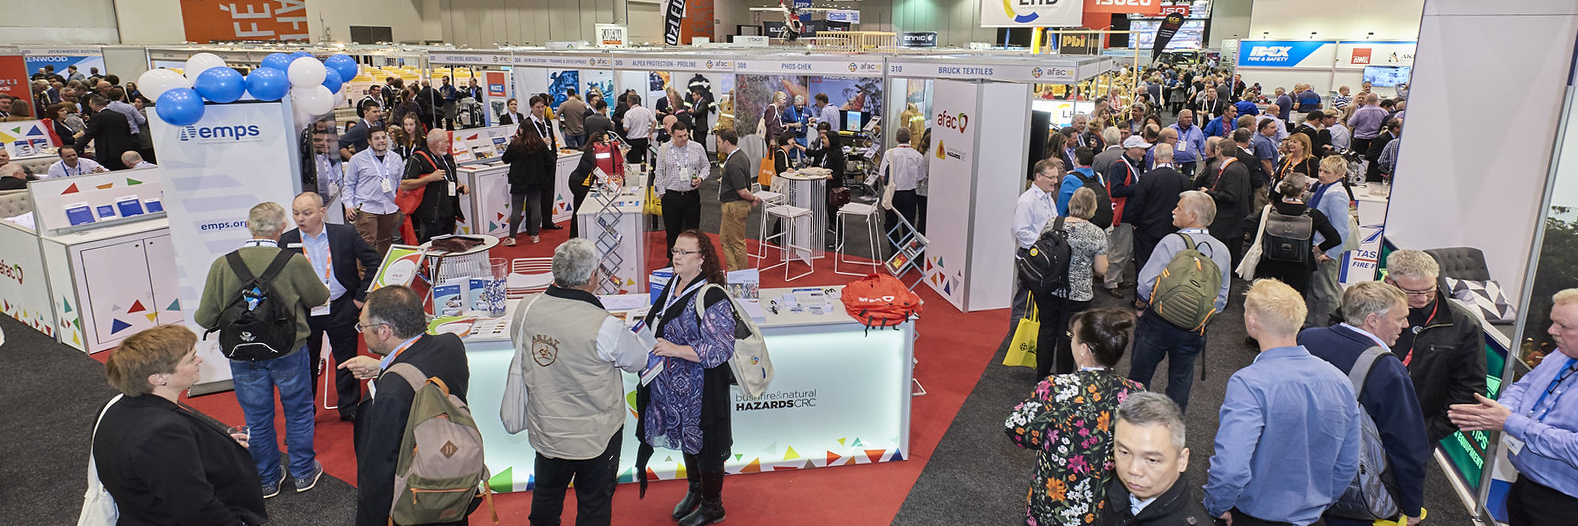 Crowd at AFAC18 trade exhibition